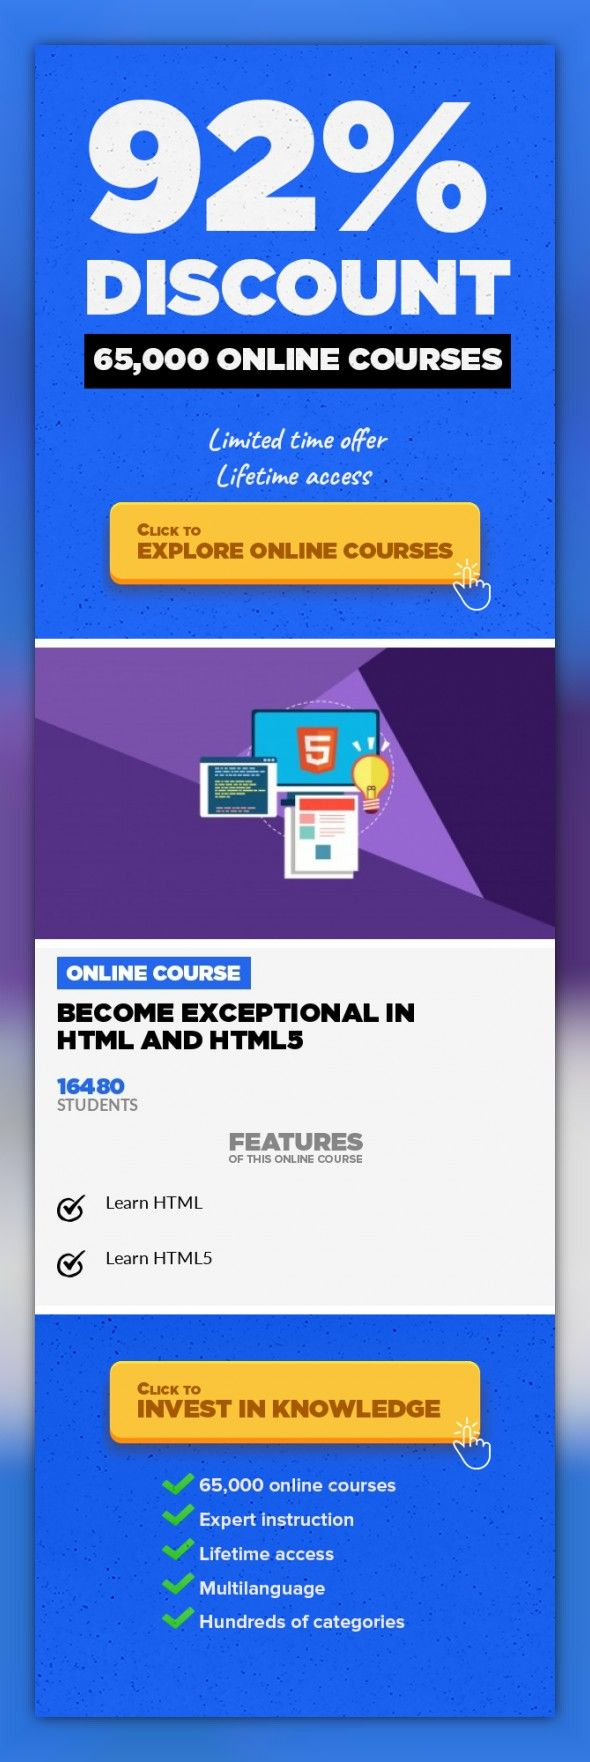 Become exceptional in html and html5 web development development become exceptional in html and html5 web development development onlinecourses coursesobstacle teachingskillsthe blueprint for web development hi malvernweather Gallery